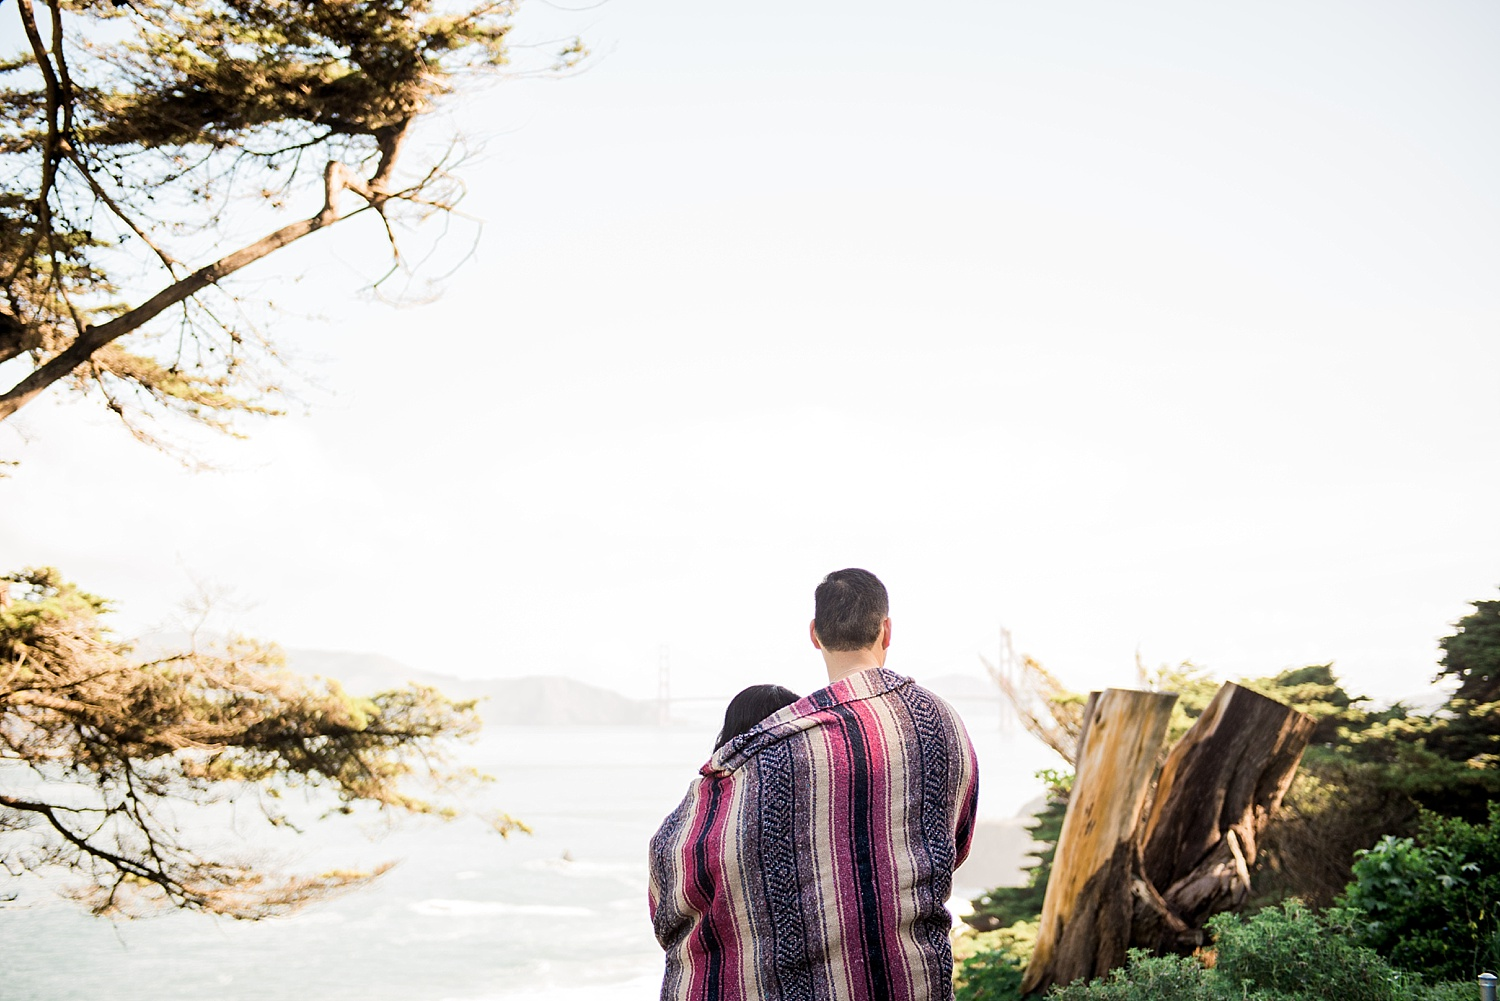 jennifer-jayn-photography-san-francisco-sutro-baths-engagement-session_0015.jpg